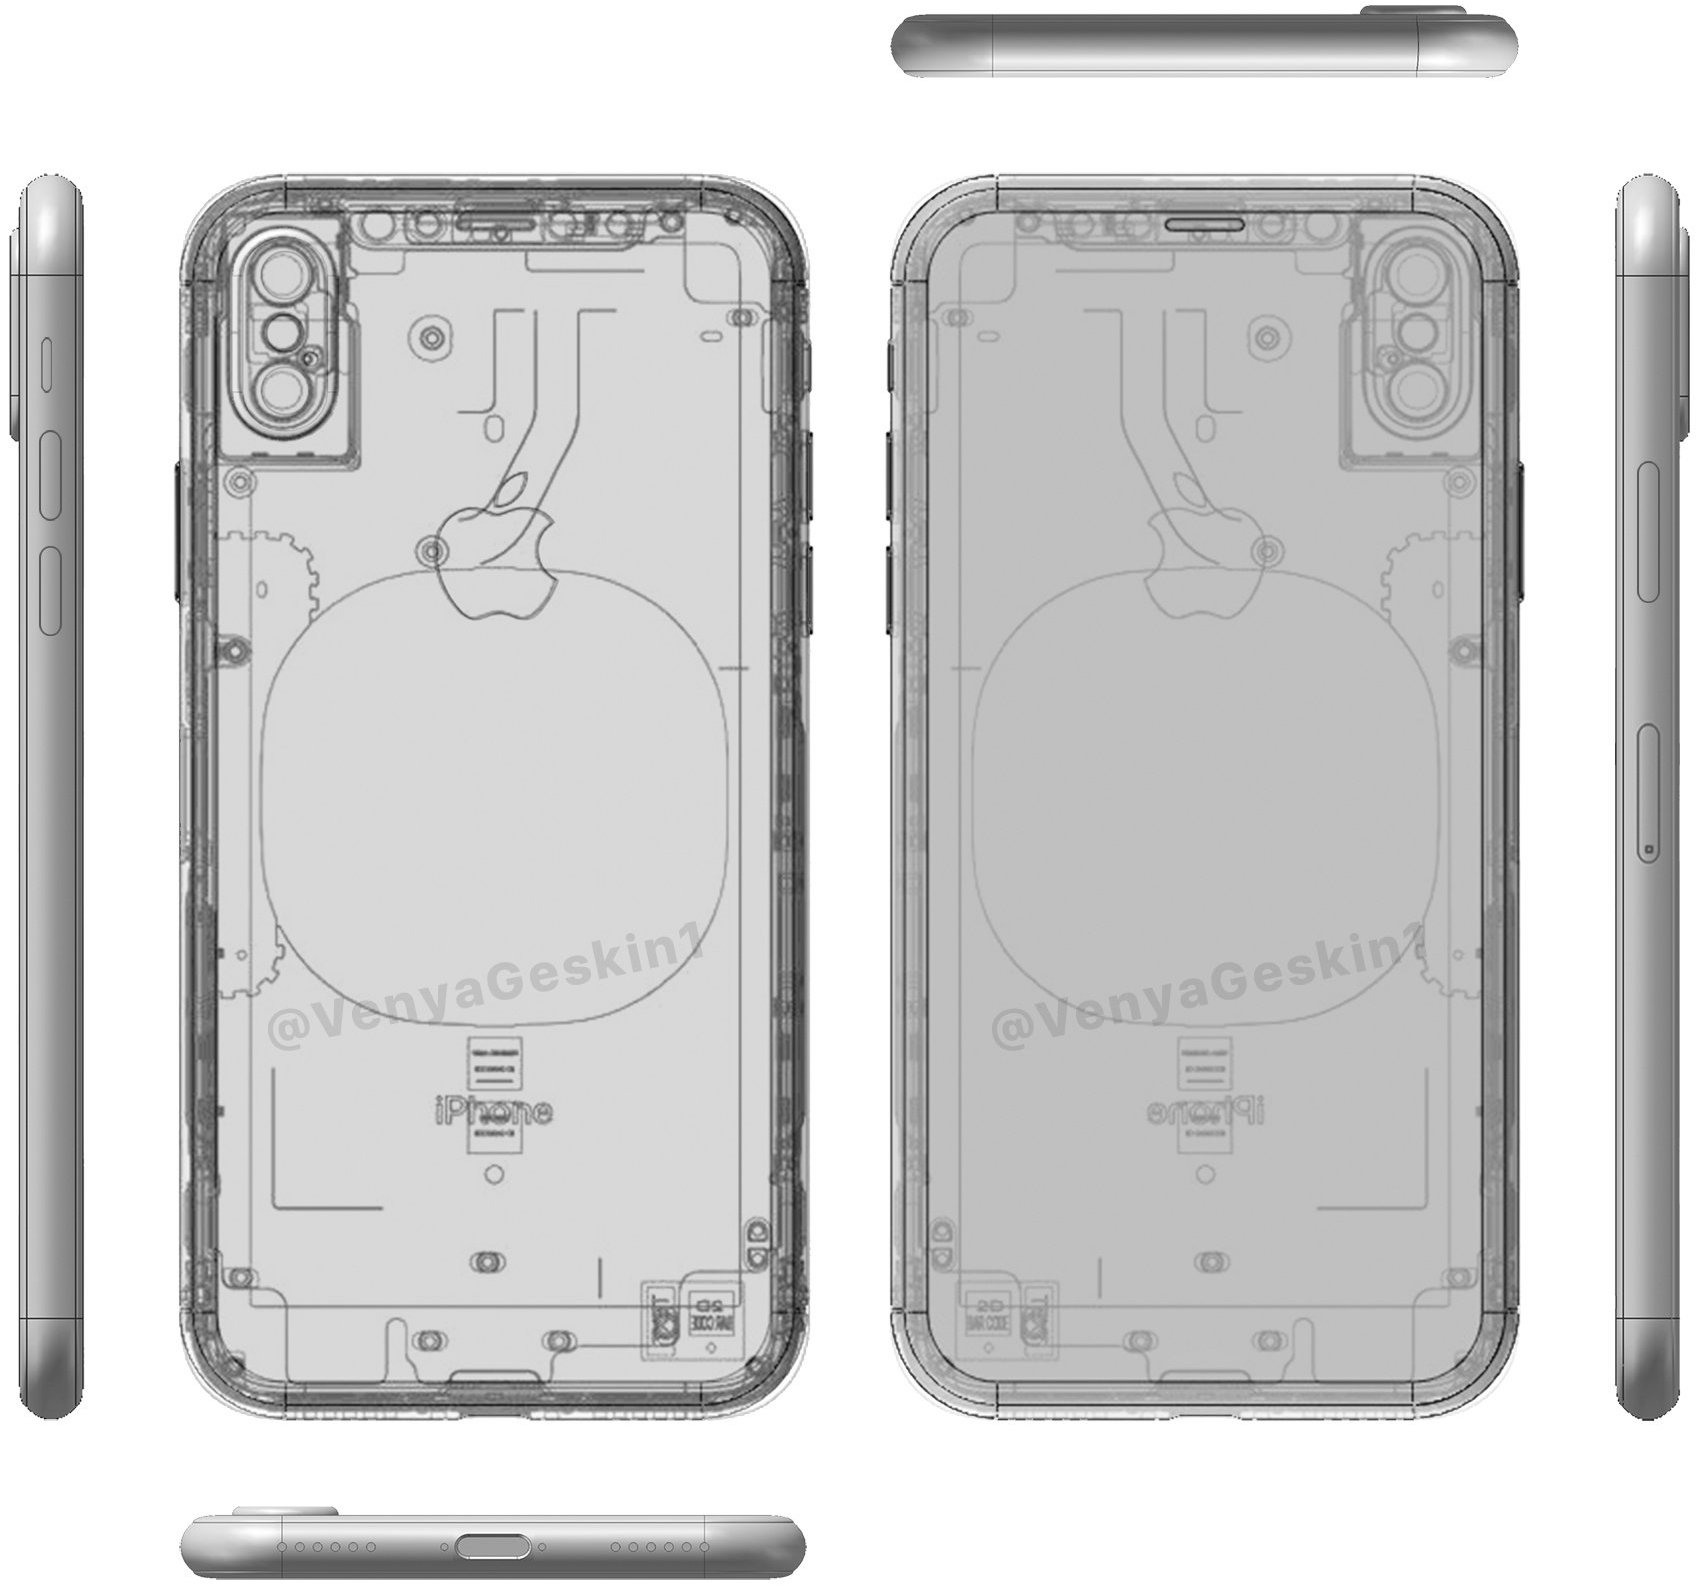 Benjamin Geskin Tweeted Out A New Image Of His Updated Cad Model Iphone 8